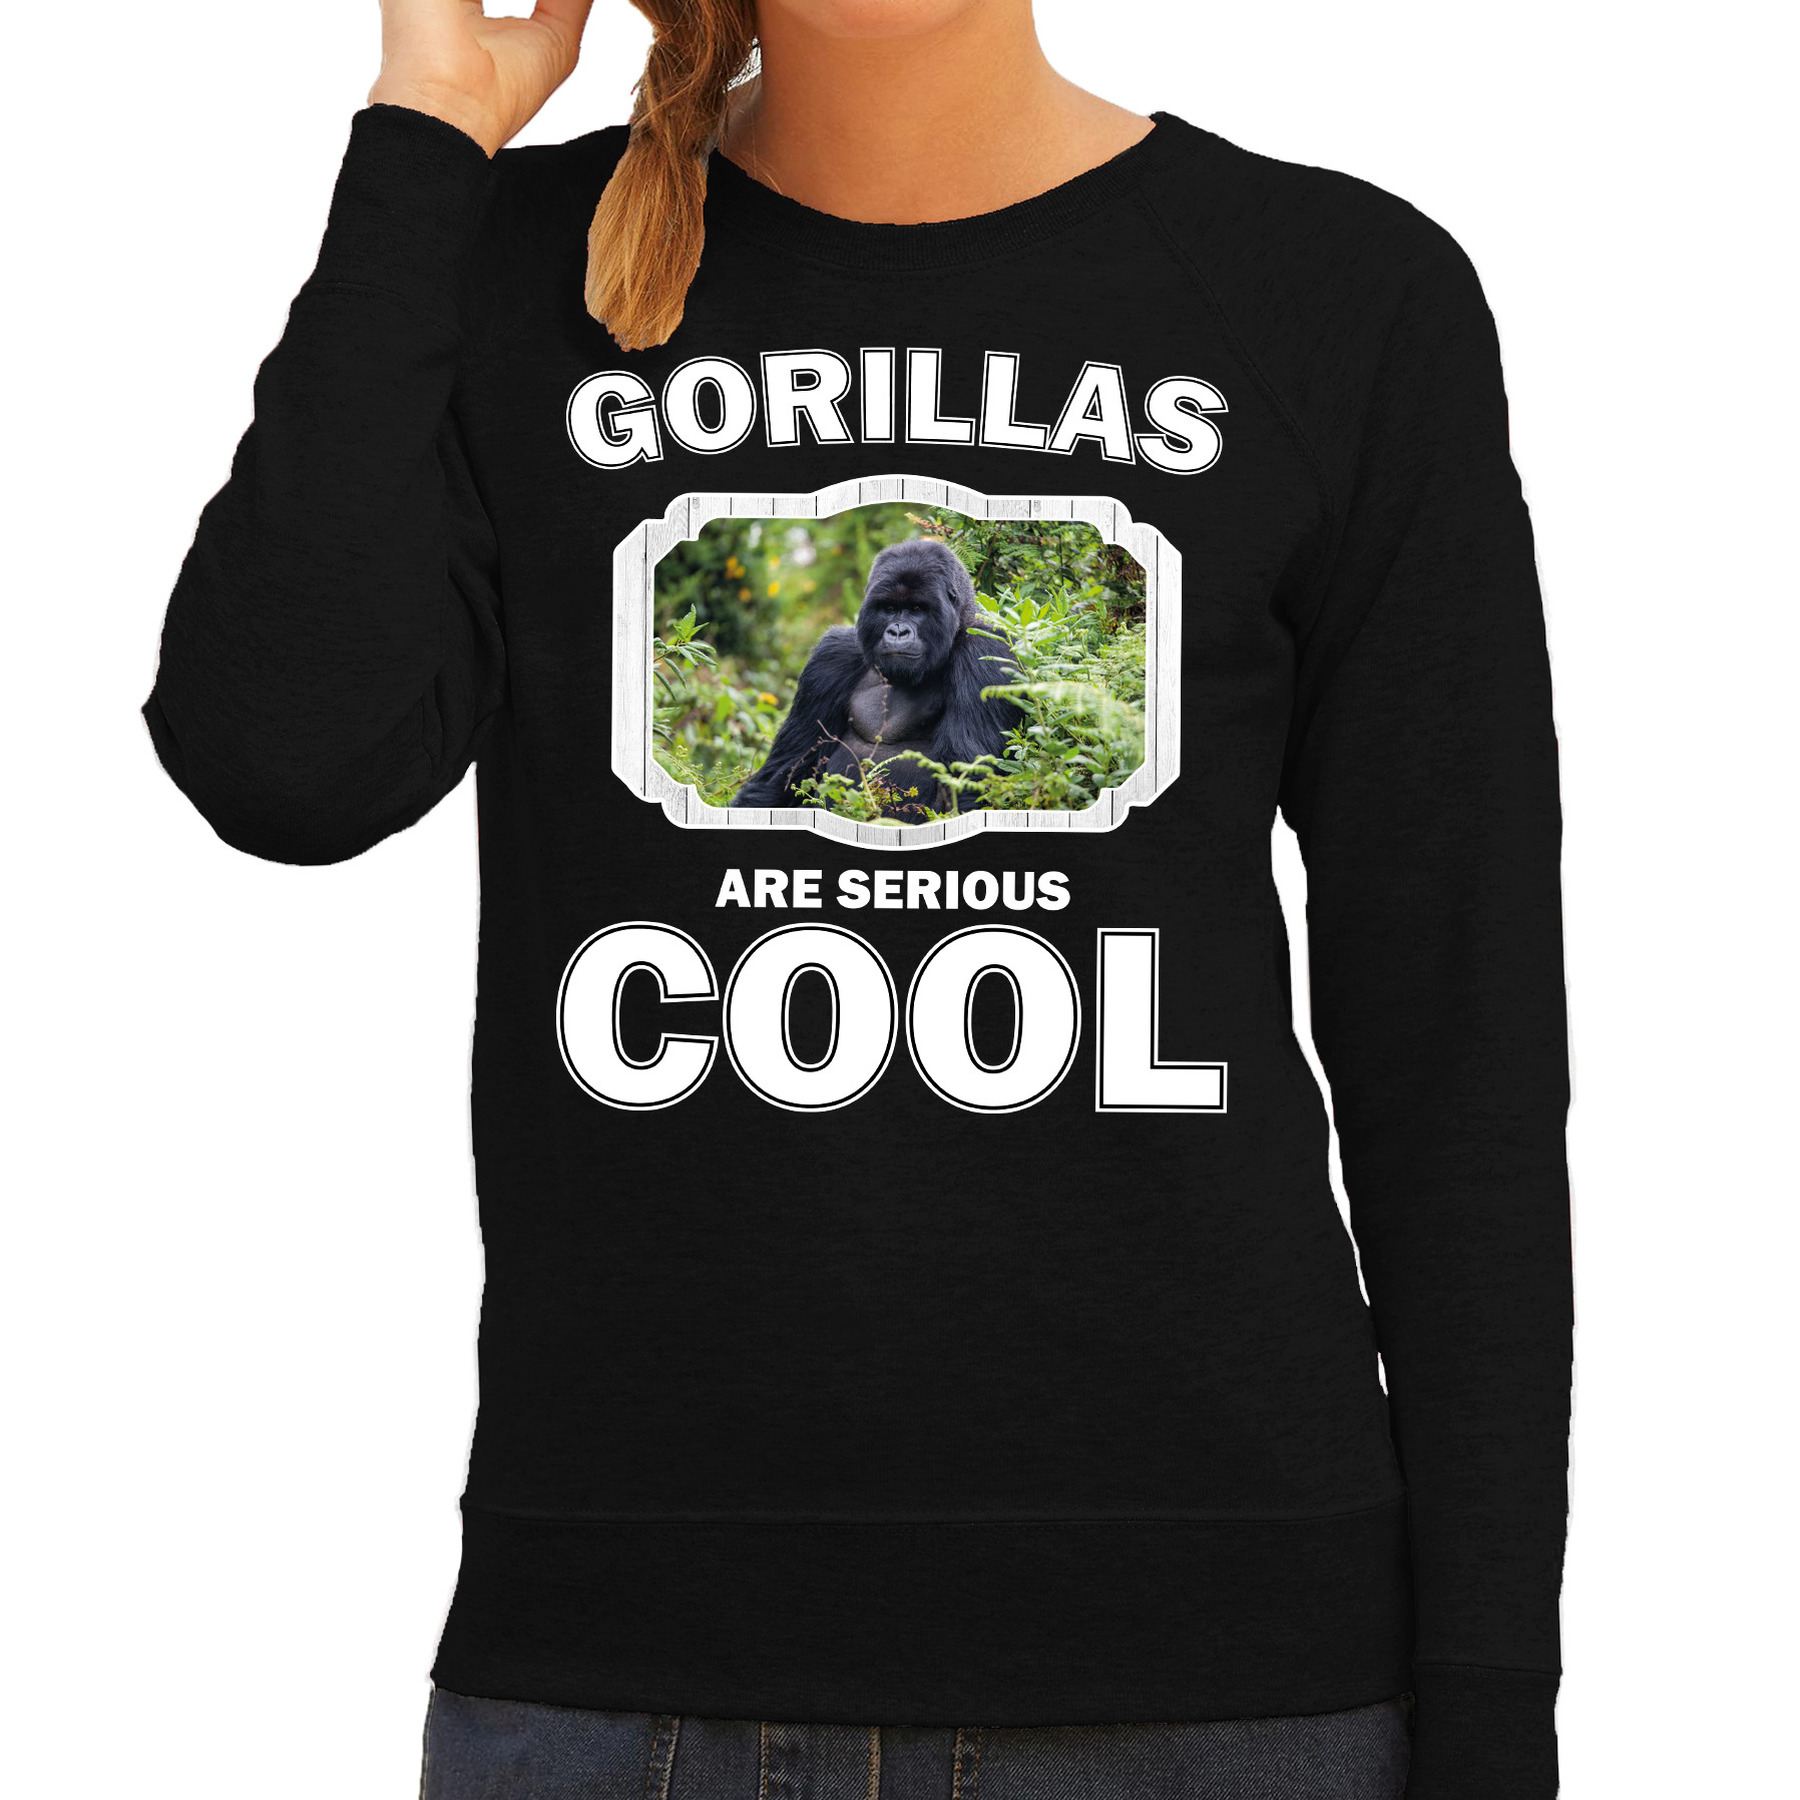 Sweater gorillas are serious cool zwart dames - gorilla apen/ gorilla trui